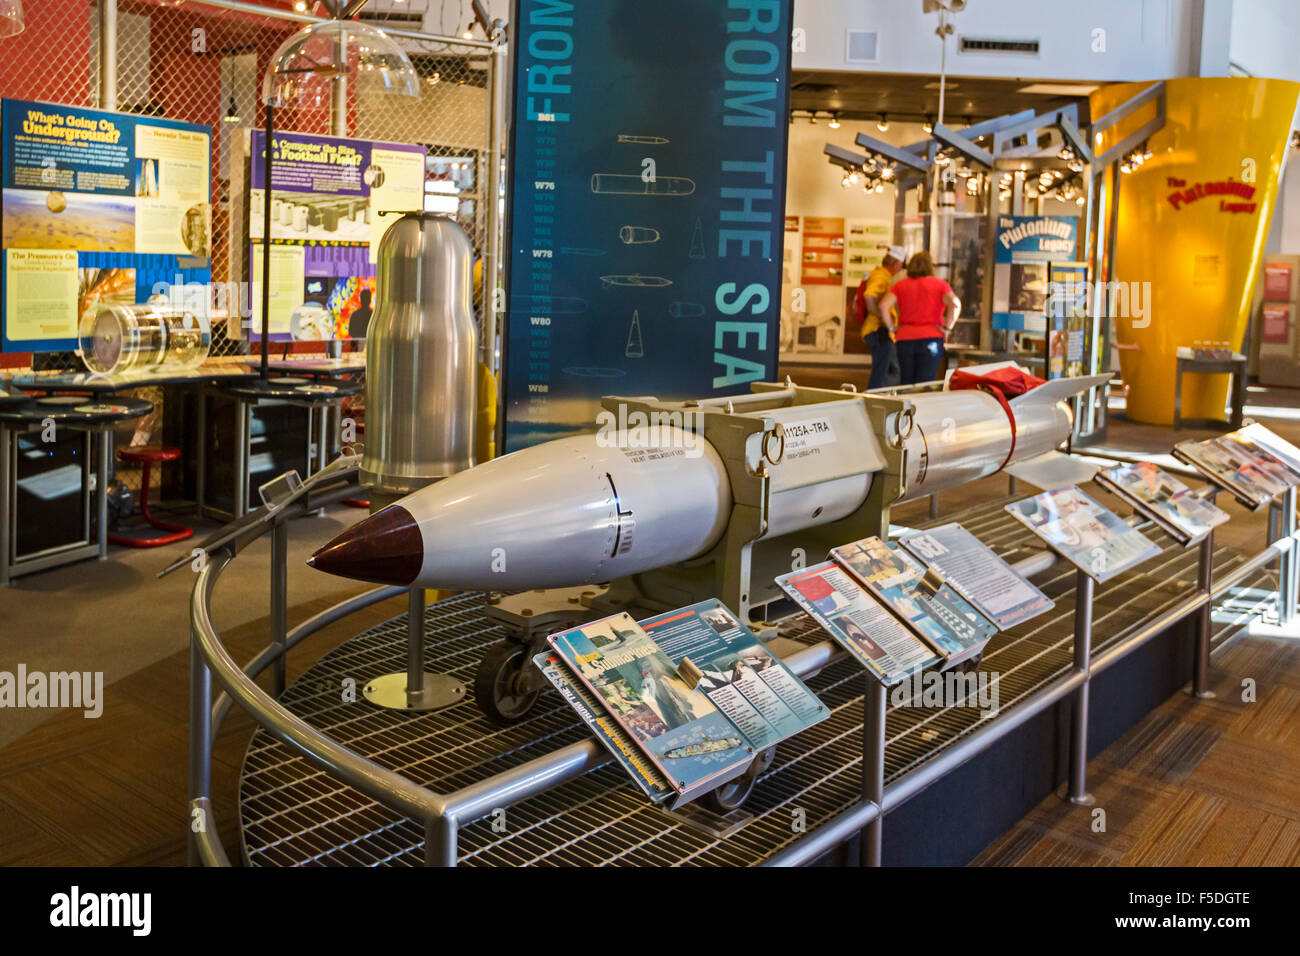 Los Alamos, New Mexico - The Bradbury Science Museum displays a casing for the B61 nuclear bomb. - Stock Image